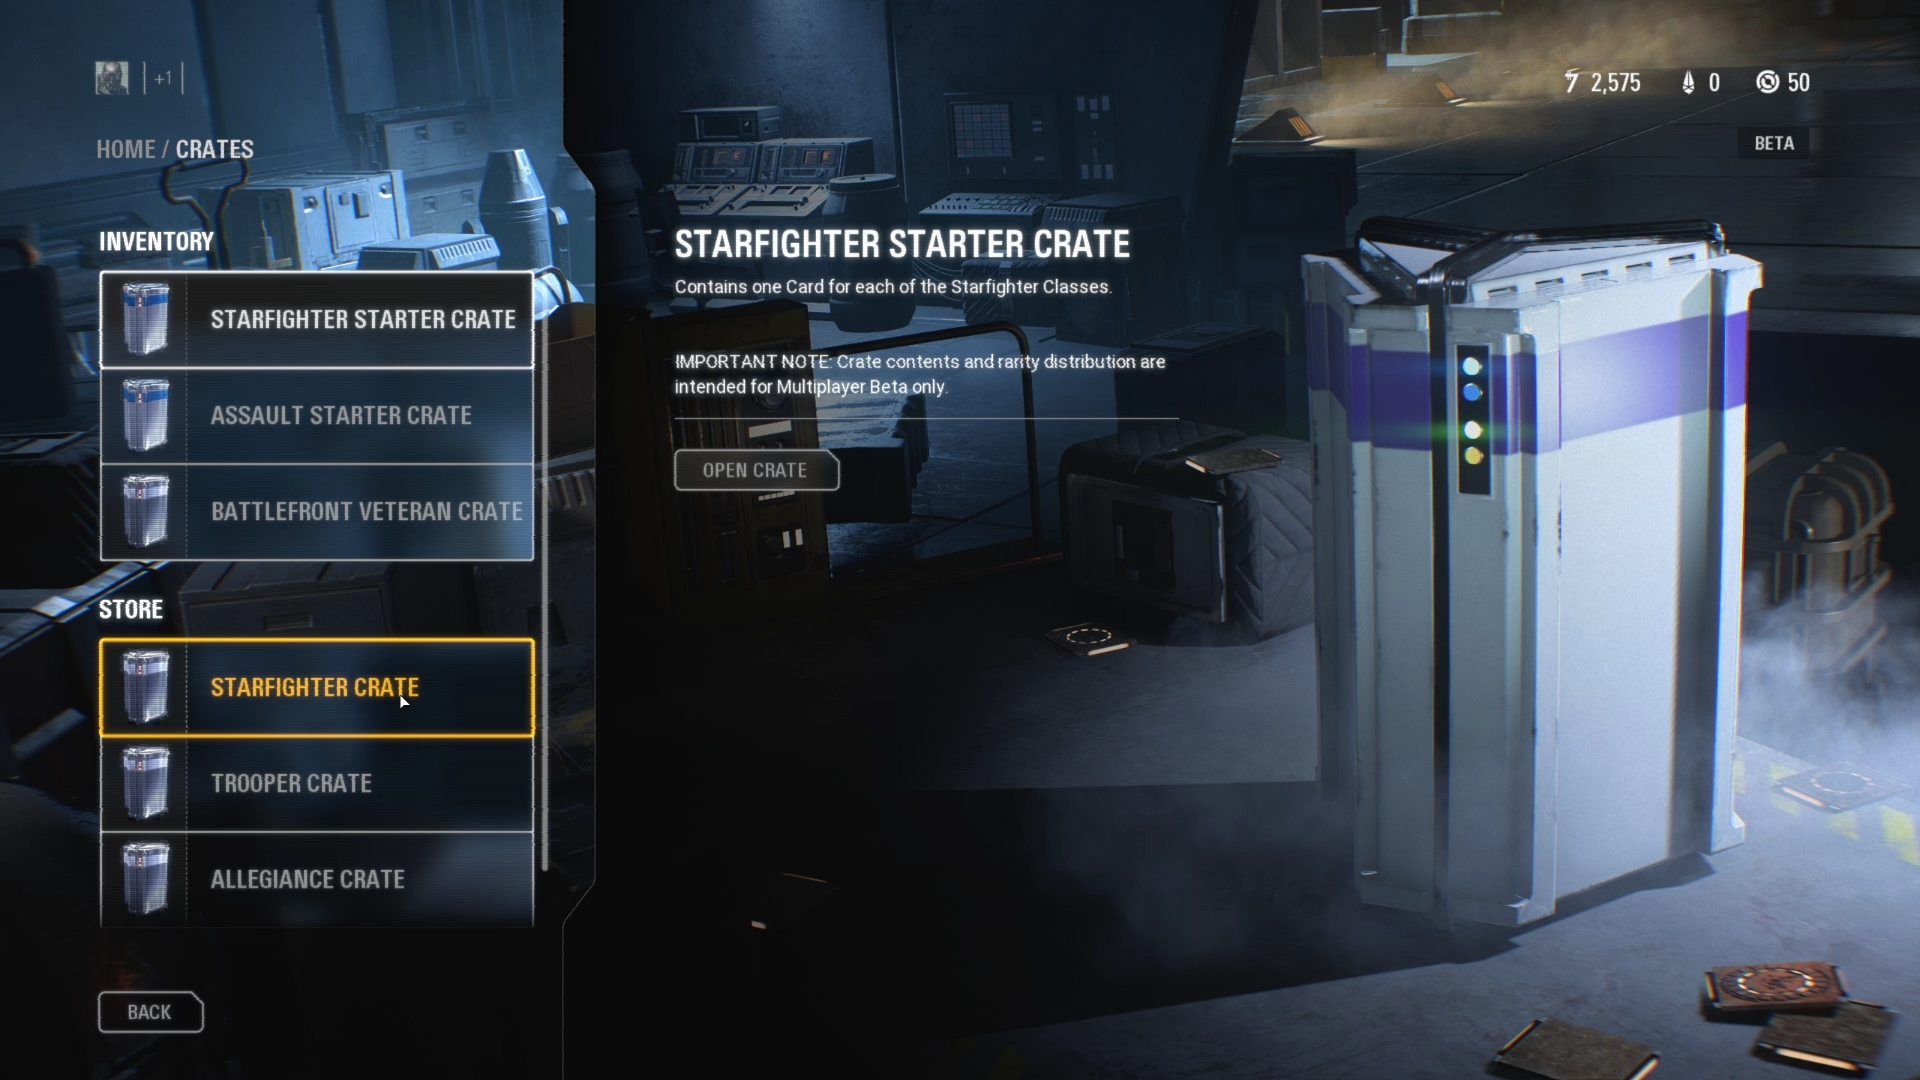 Star Wars Battlefront II's Crate & Progression Systems Being Eyeballed for Change